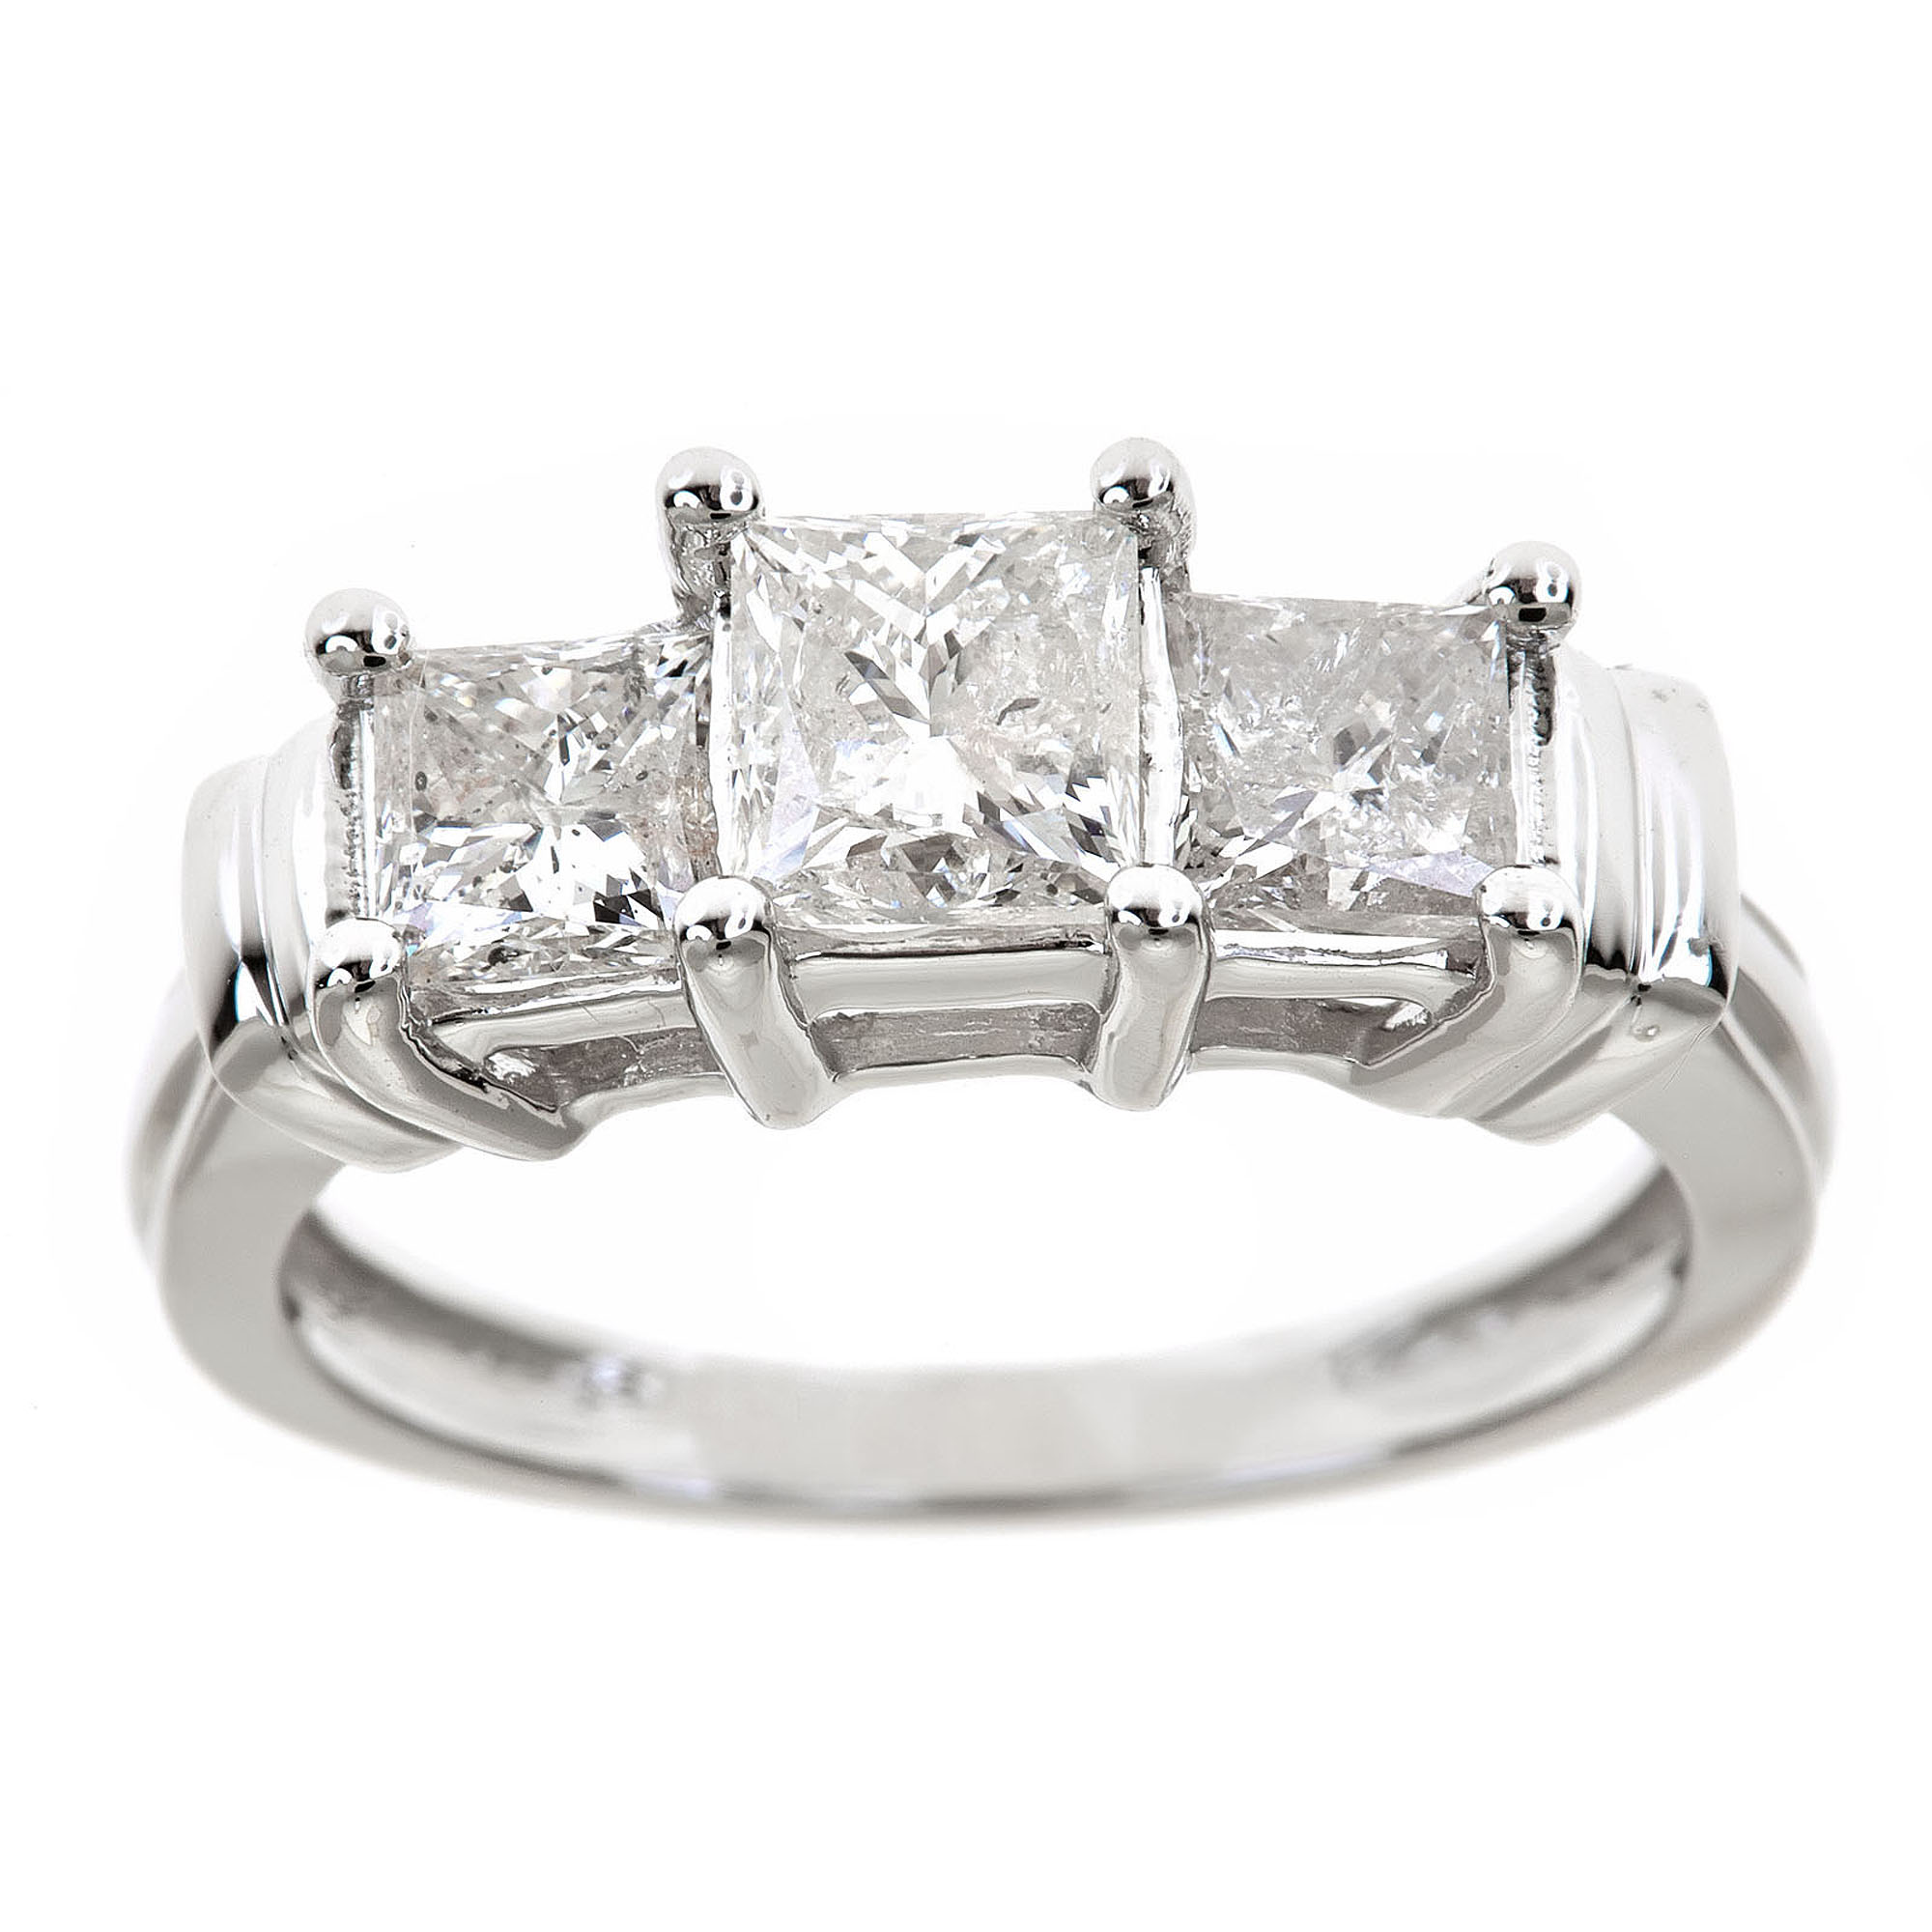 1-1/2 Carat T.W. Genuine Princess White Diamond 14kt White Gold Three-Stone Ring, IGL Certified